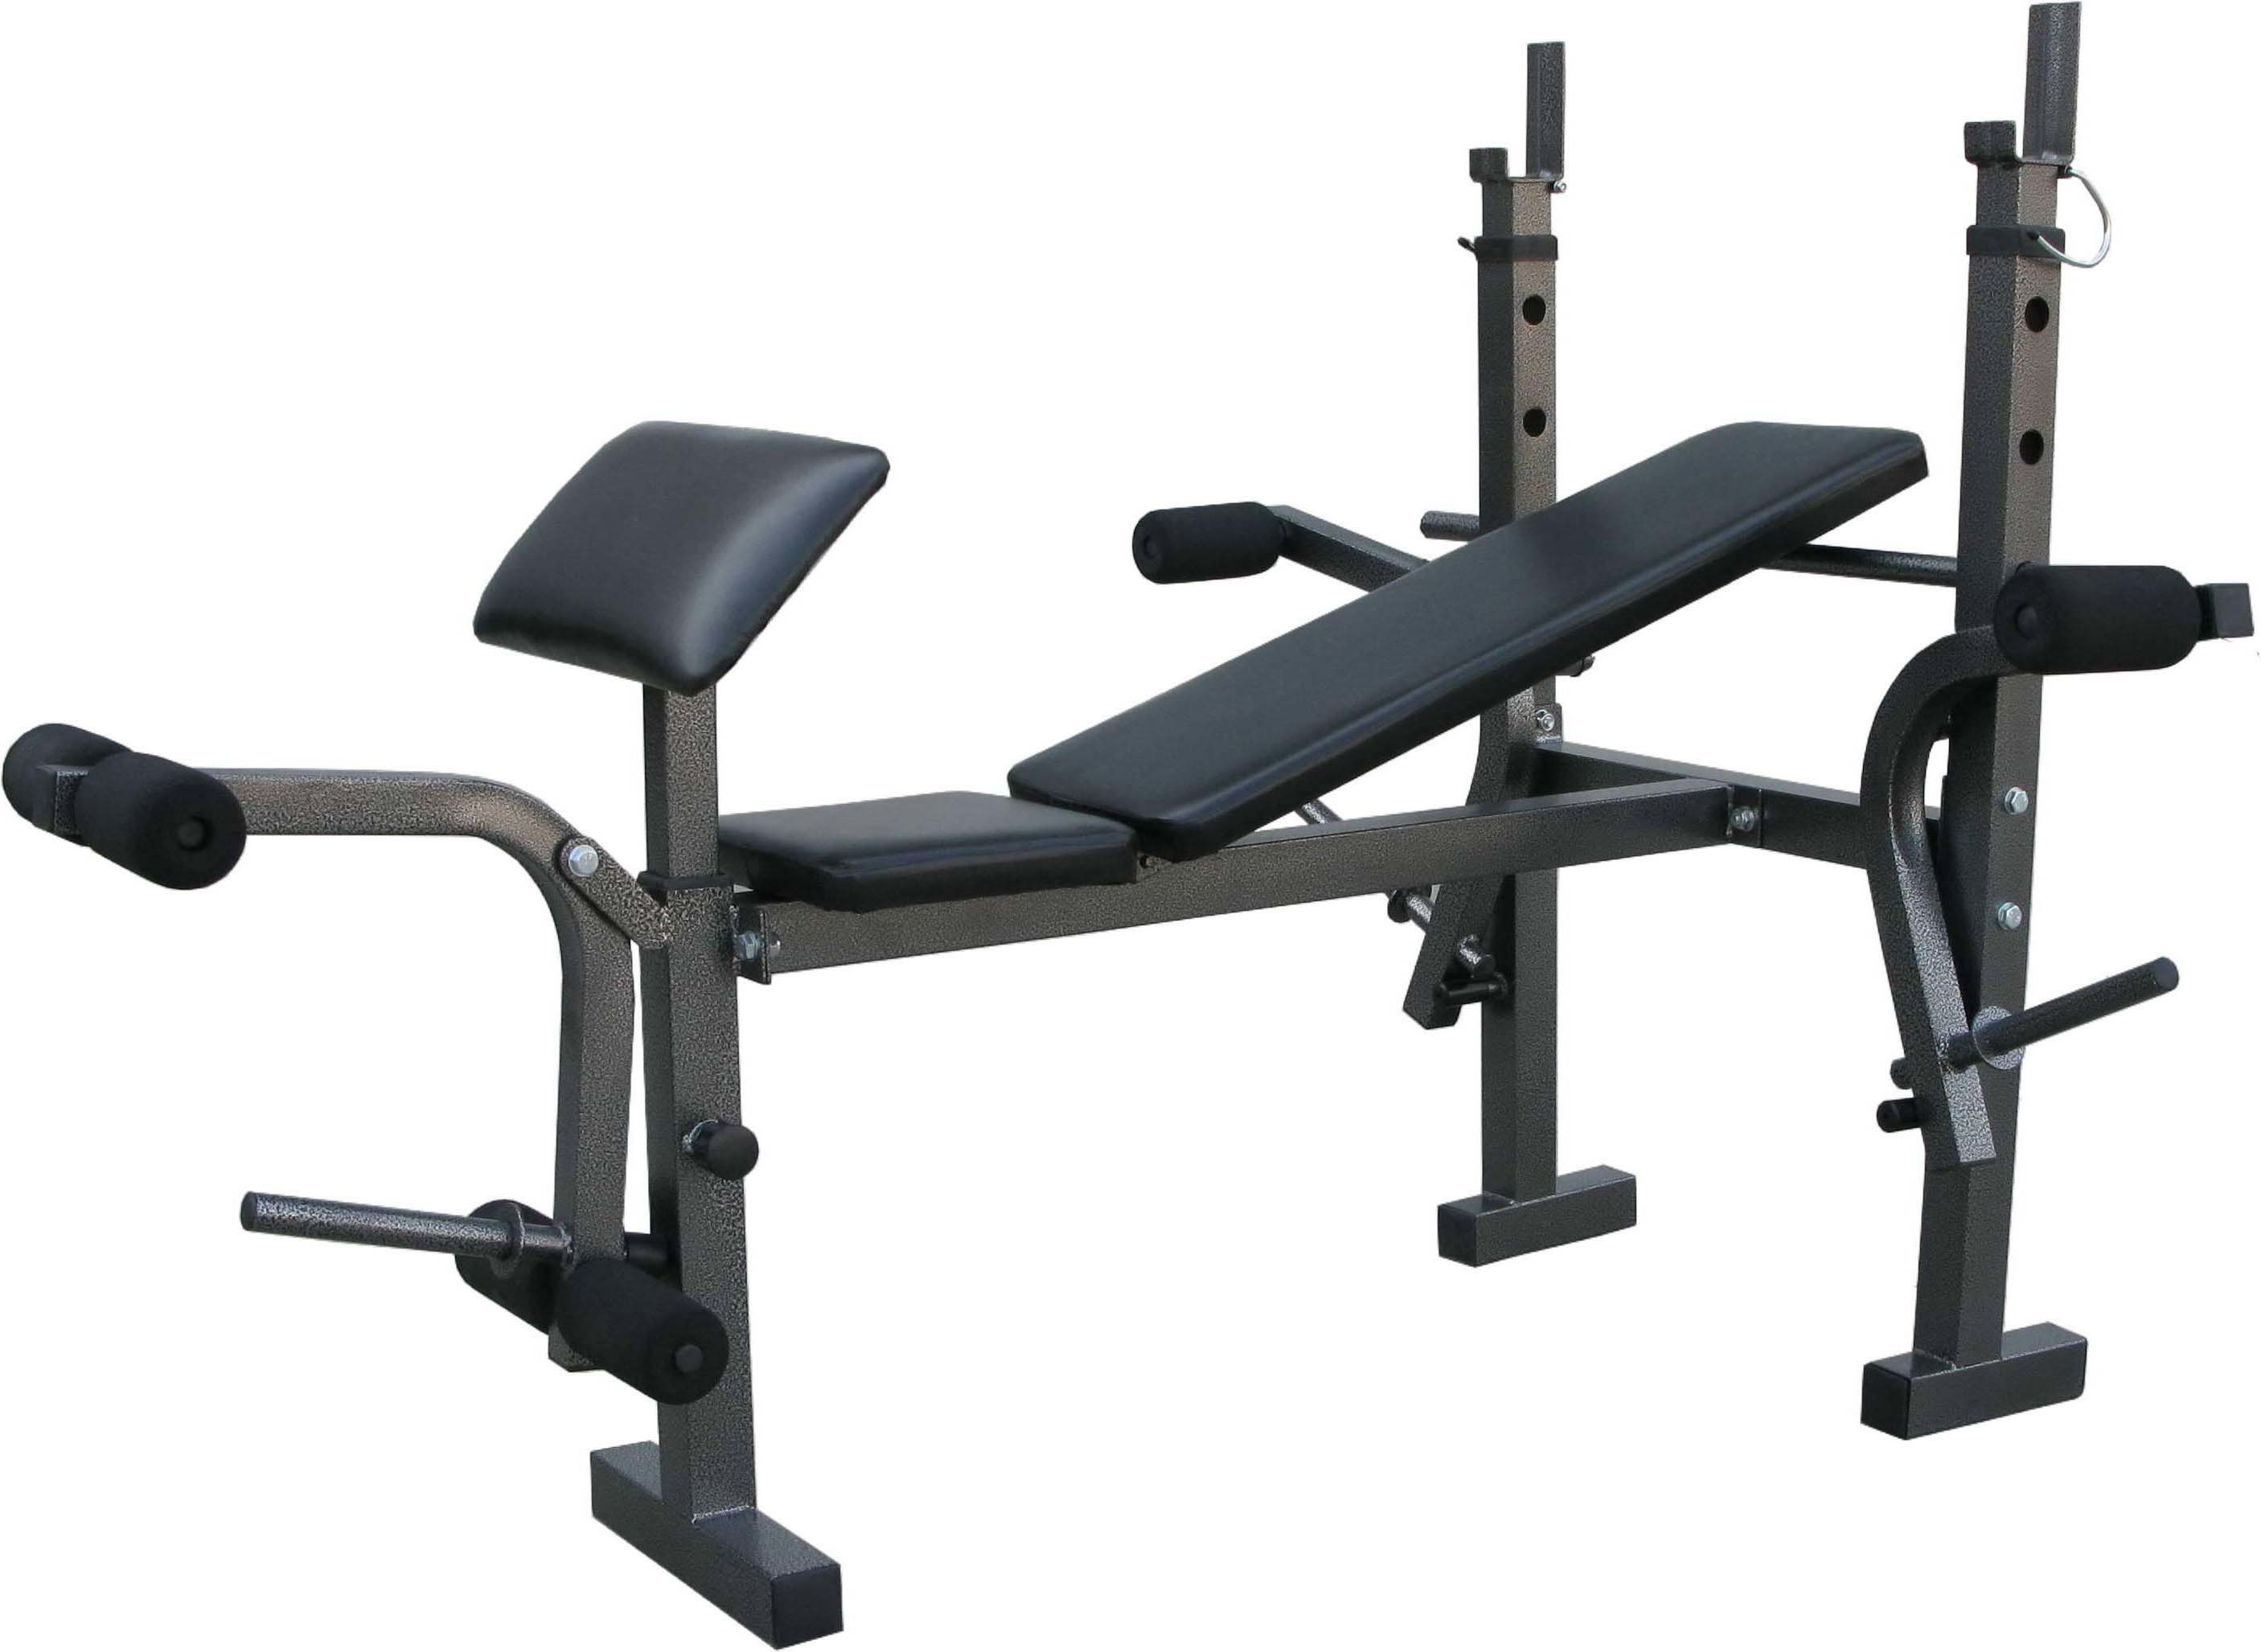 China Weight Lifting Bench Al2034 China Weight Lifting Bench Weight Bench